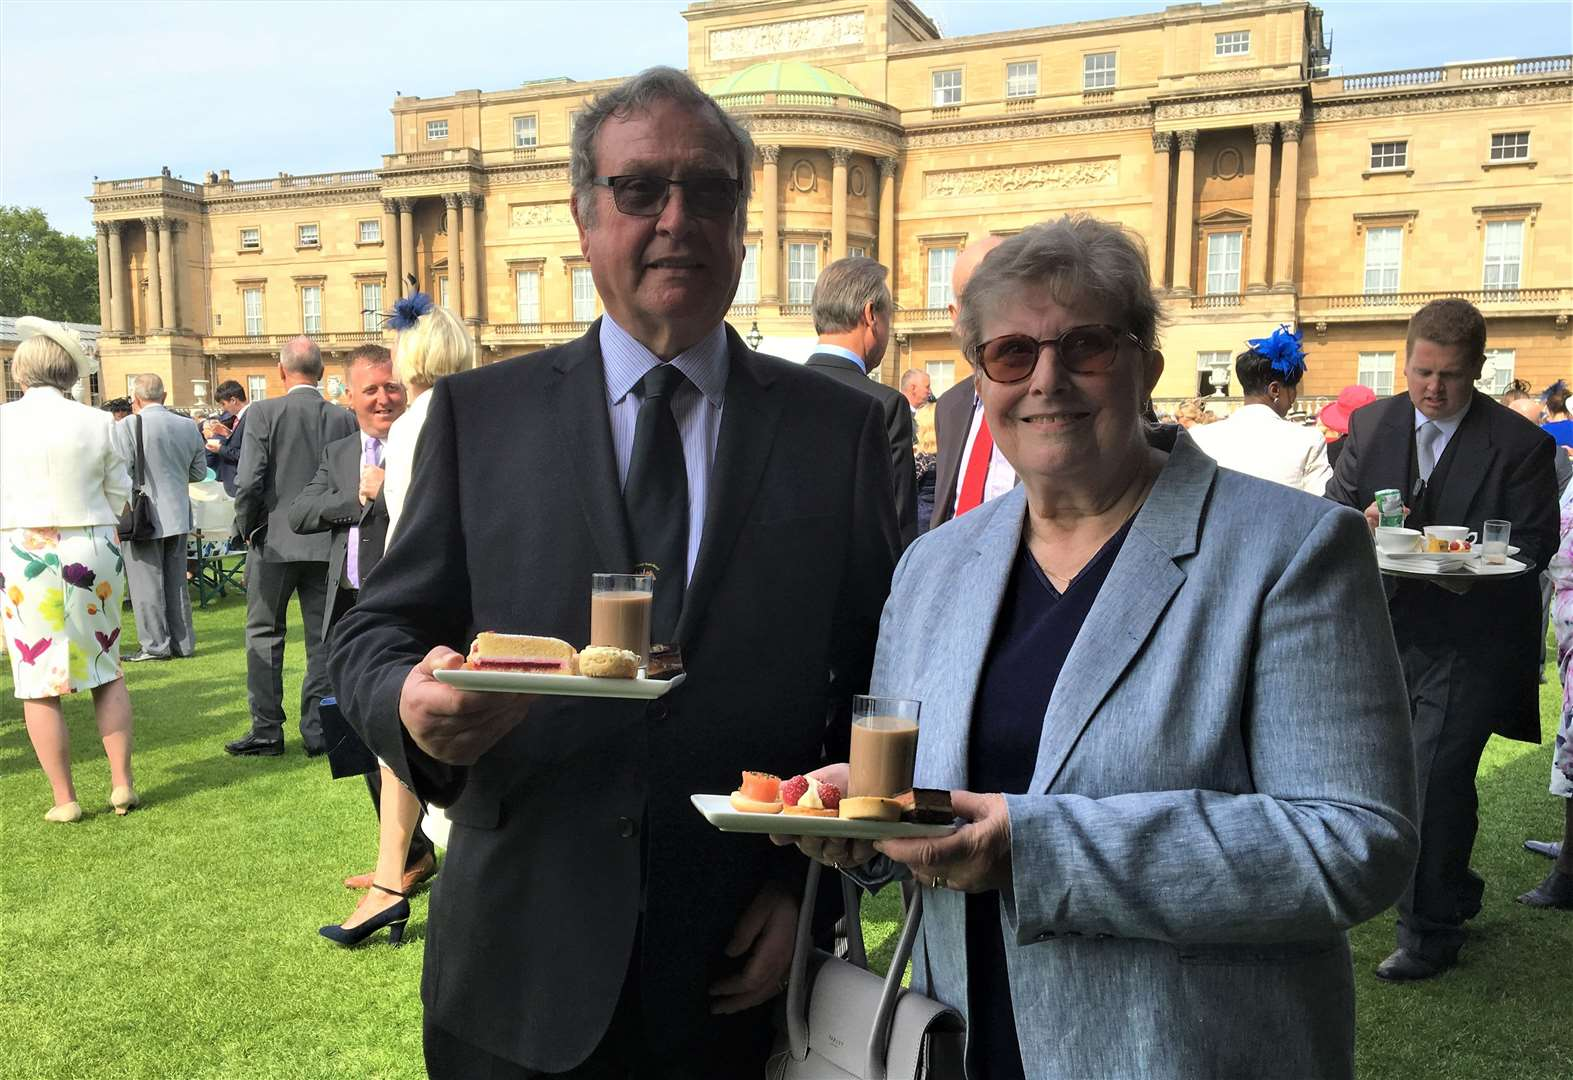 Holbeach band leader's dedication rewarded with visit to Royal Garden Party